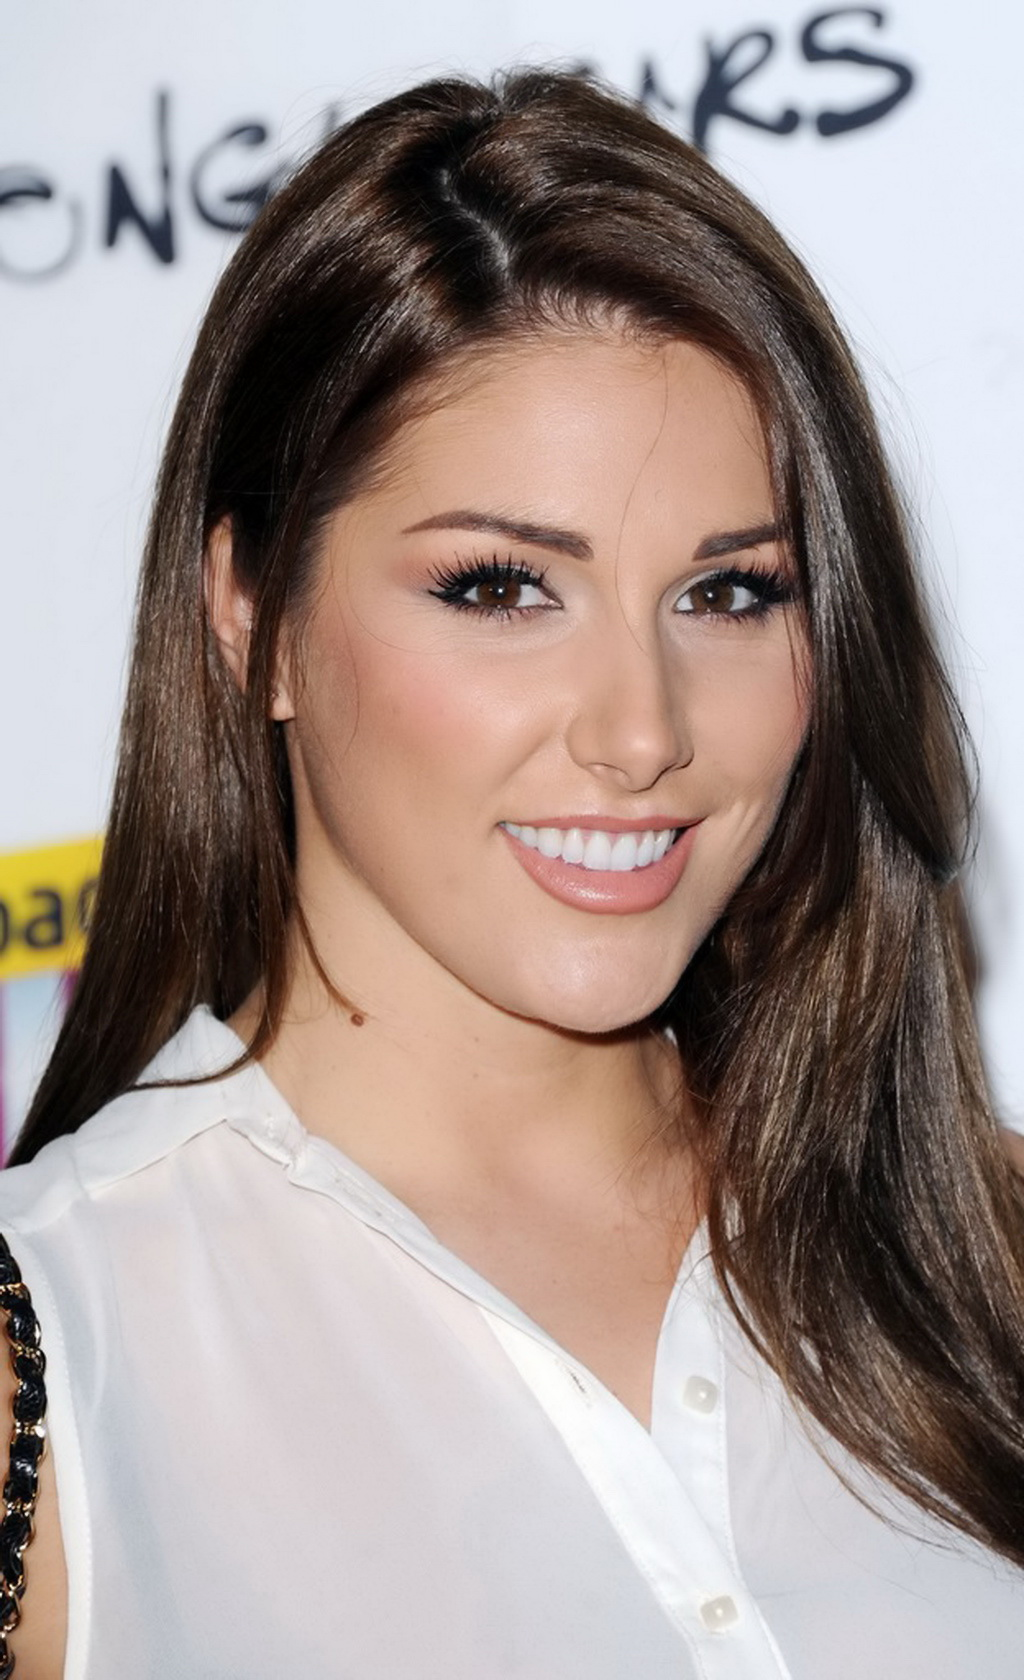 Lucy pinder - YouTube